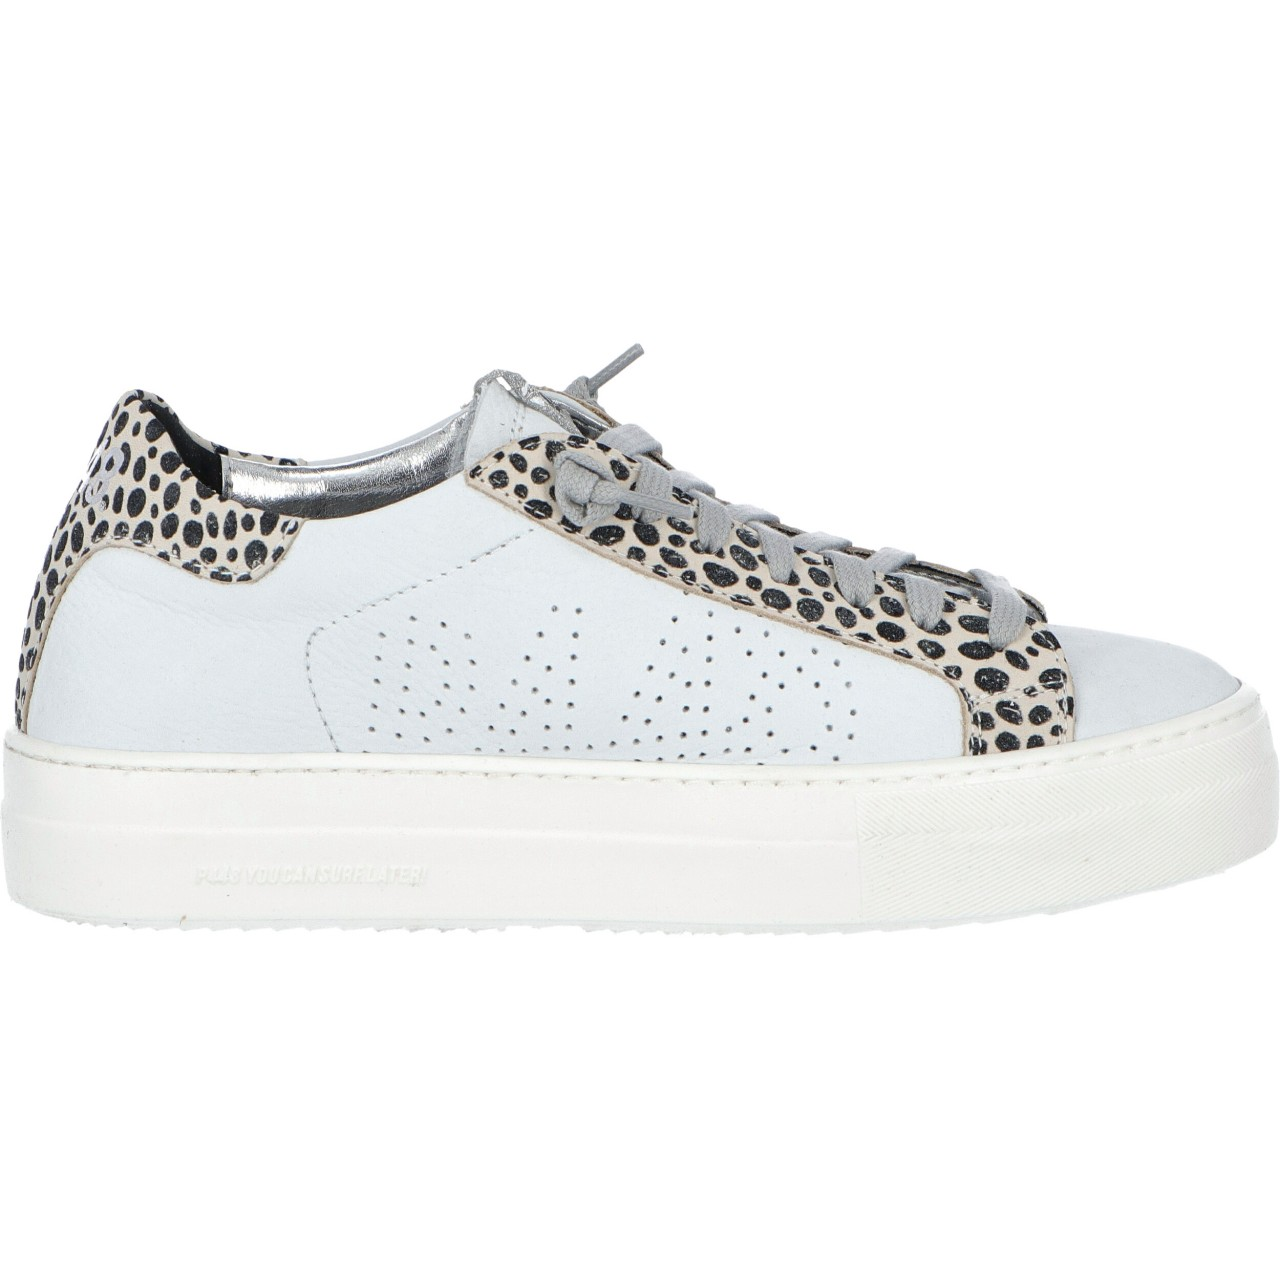 P448 Donna Scarpe P448 Donna Thea White Iena Made In Italy THEAIENAP